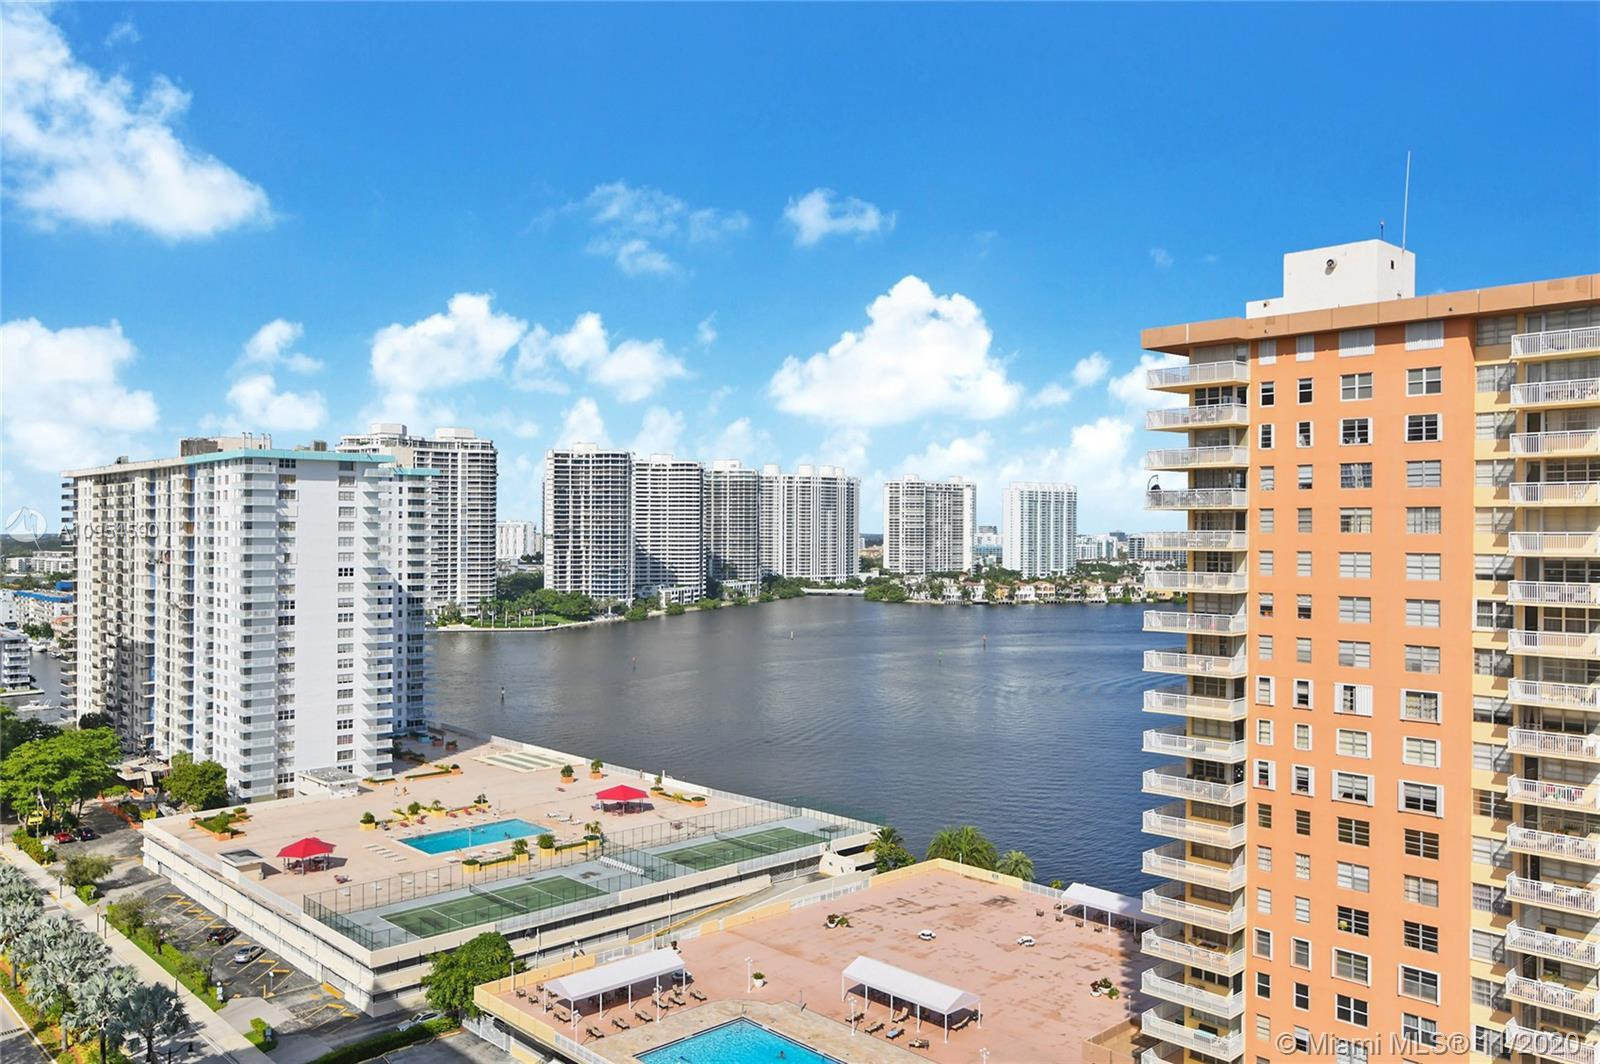 MAGNIFICENT FULLY RENO 2 BED/ 2 BA WATERVIEW HOME IN 24-hr SECURITY BLDG, FULLY EQUIPPED FIT ROOM, H